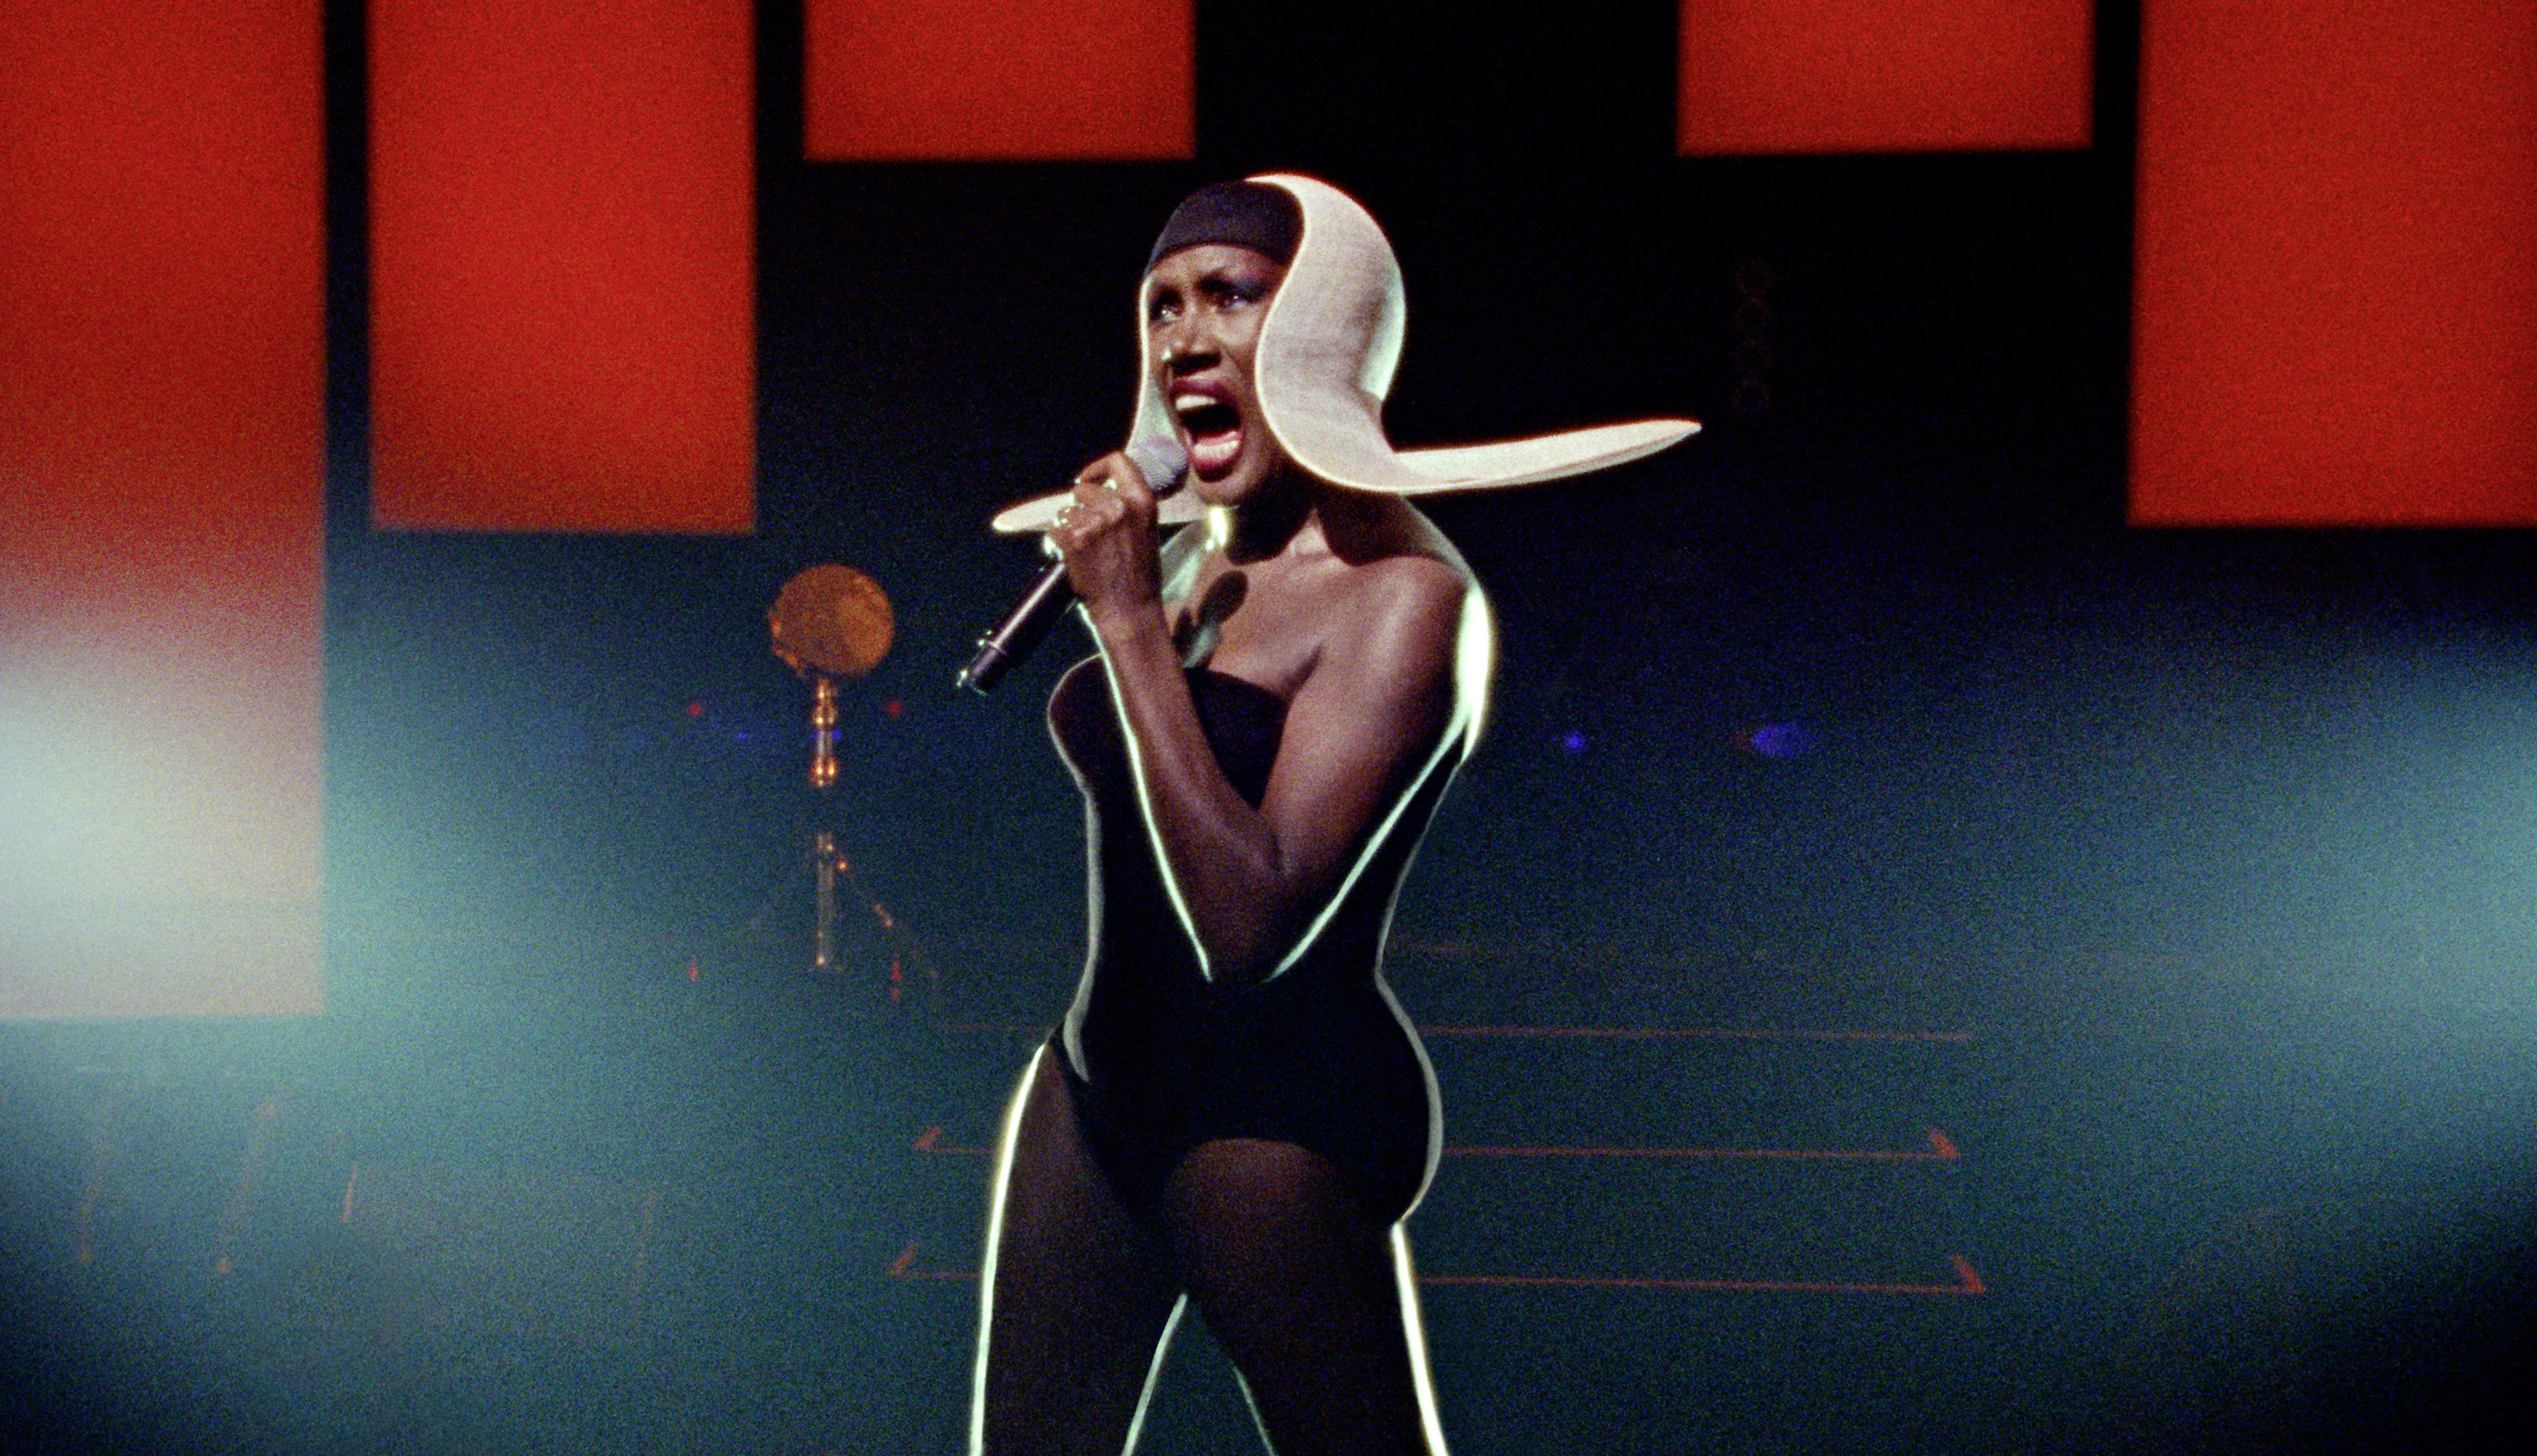 Viennale Grace Jones